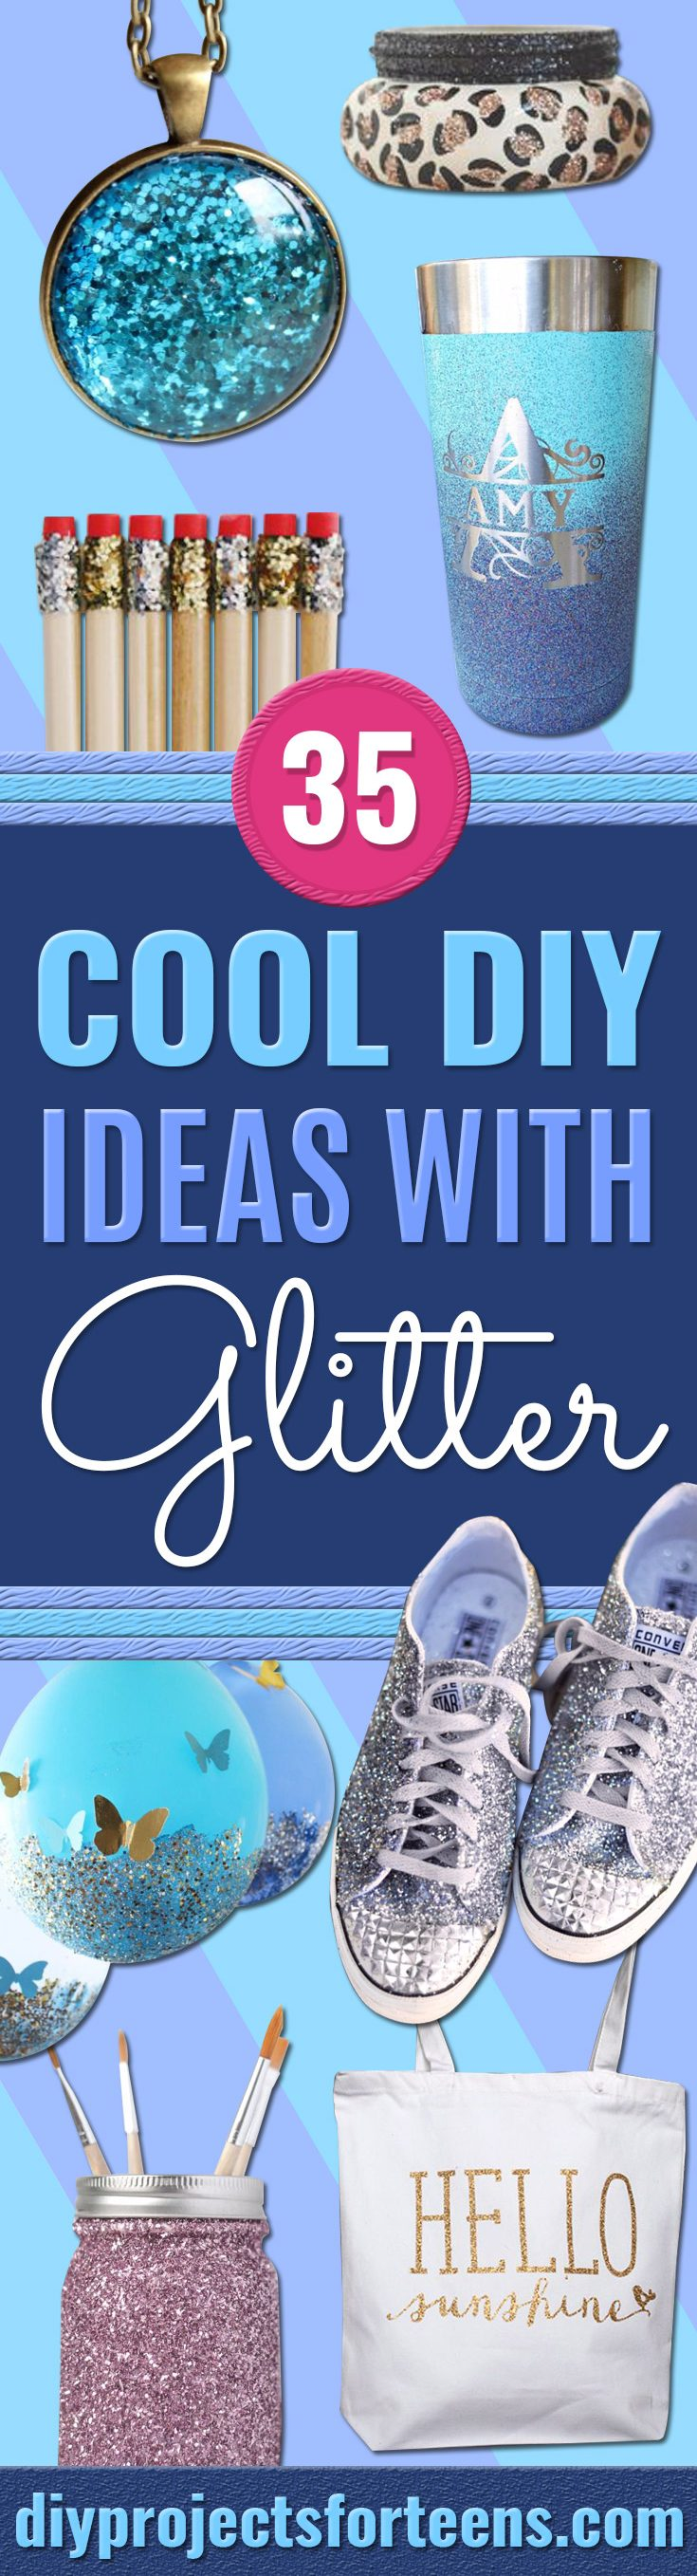 DIY Ideas Made WIth Glitter - Easy Crafts and Projects for Decoration, Gifts, and Bedroom Decor - How To Make Ombre, Mod Podge and Glitter Mason Jar Gift Ideas For Teens - Easy Clothes and Makeup Crafts For Teenagers - Easy Glitter Crafts Ideas